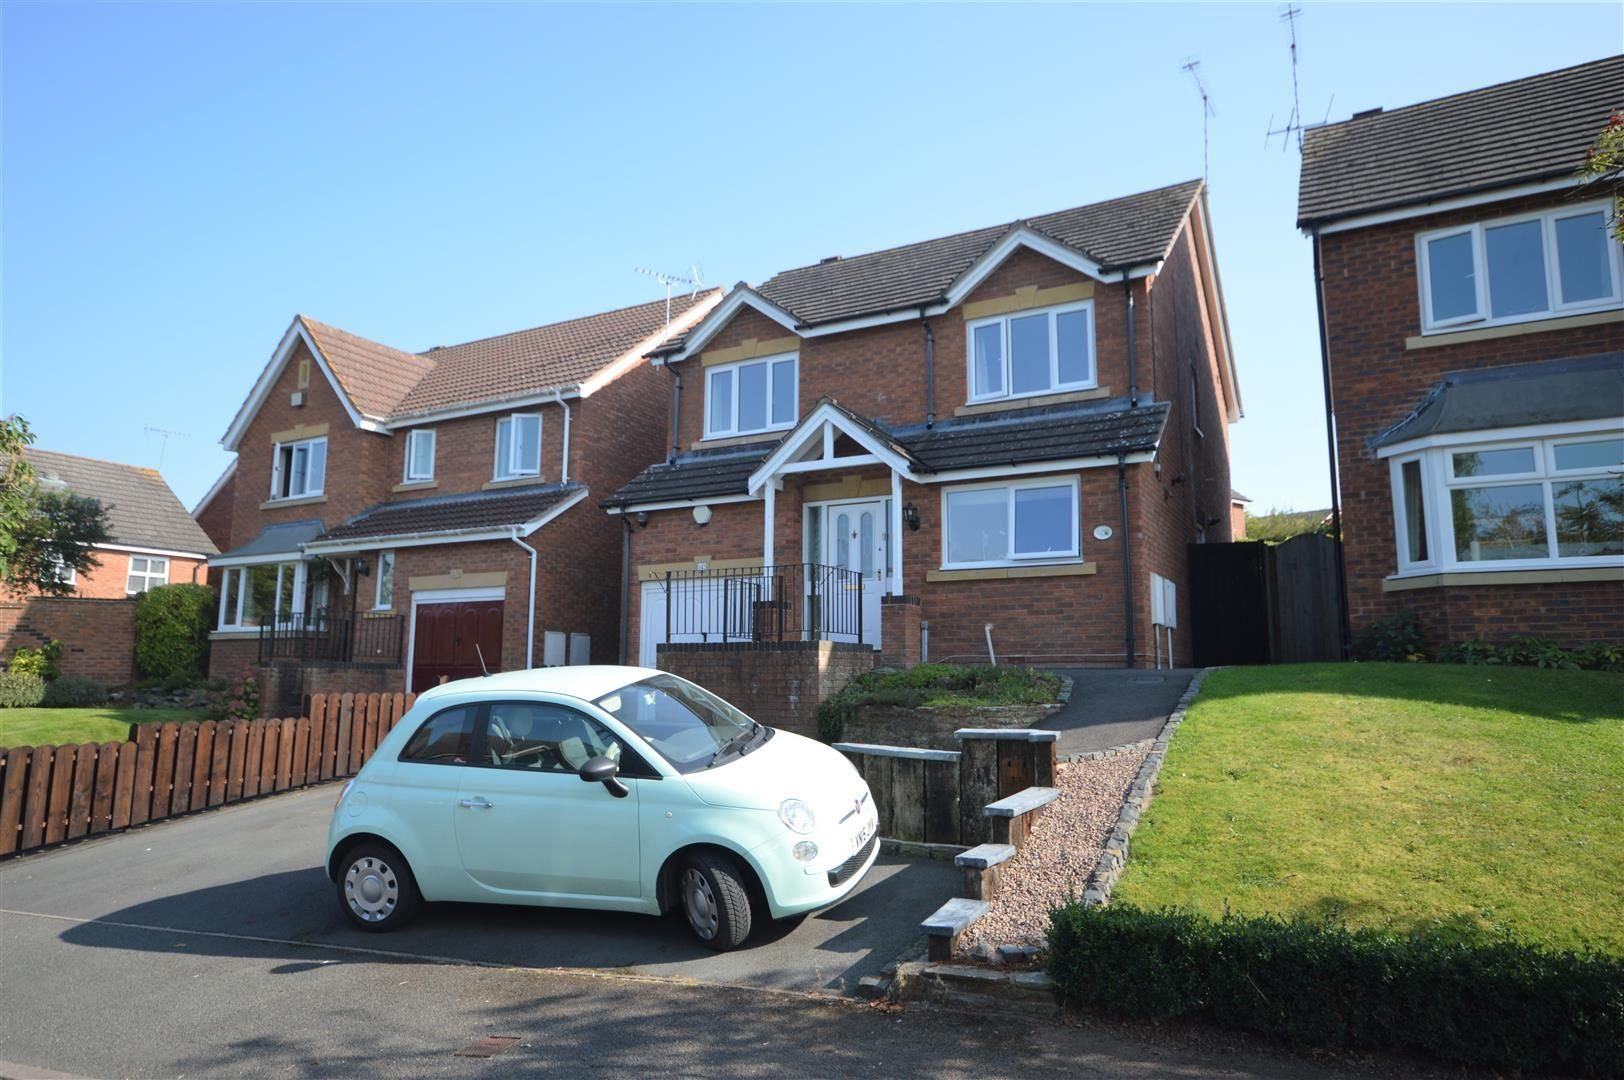 4 bed detached for sale in Leominster 1